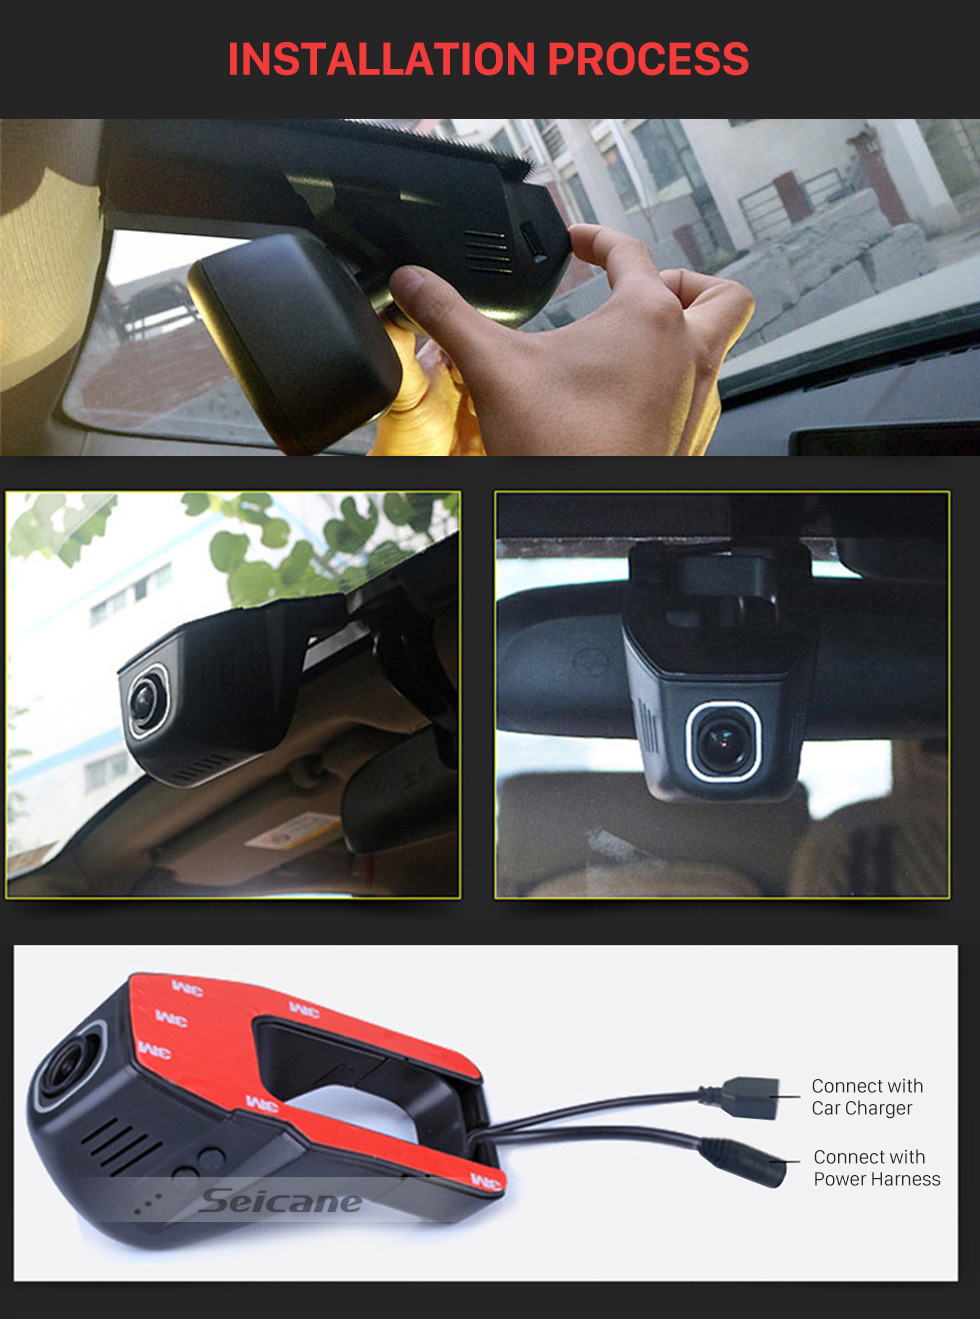 Seicane Universal Hidden HD 170 Degree Wide Angle Car Driving Video Recorder with WIFI Phone Connection Display GPS Driving Trajectory Parking Monitoring Backup Rearview Camera